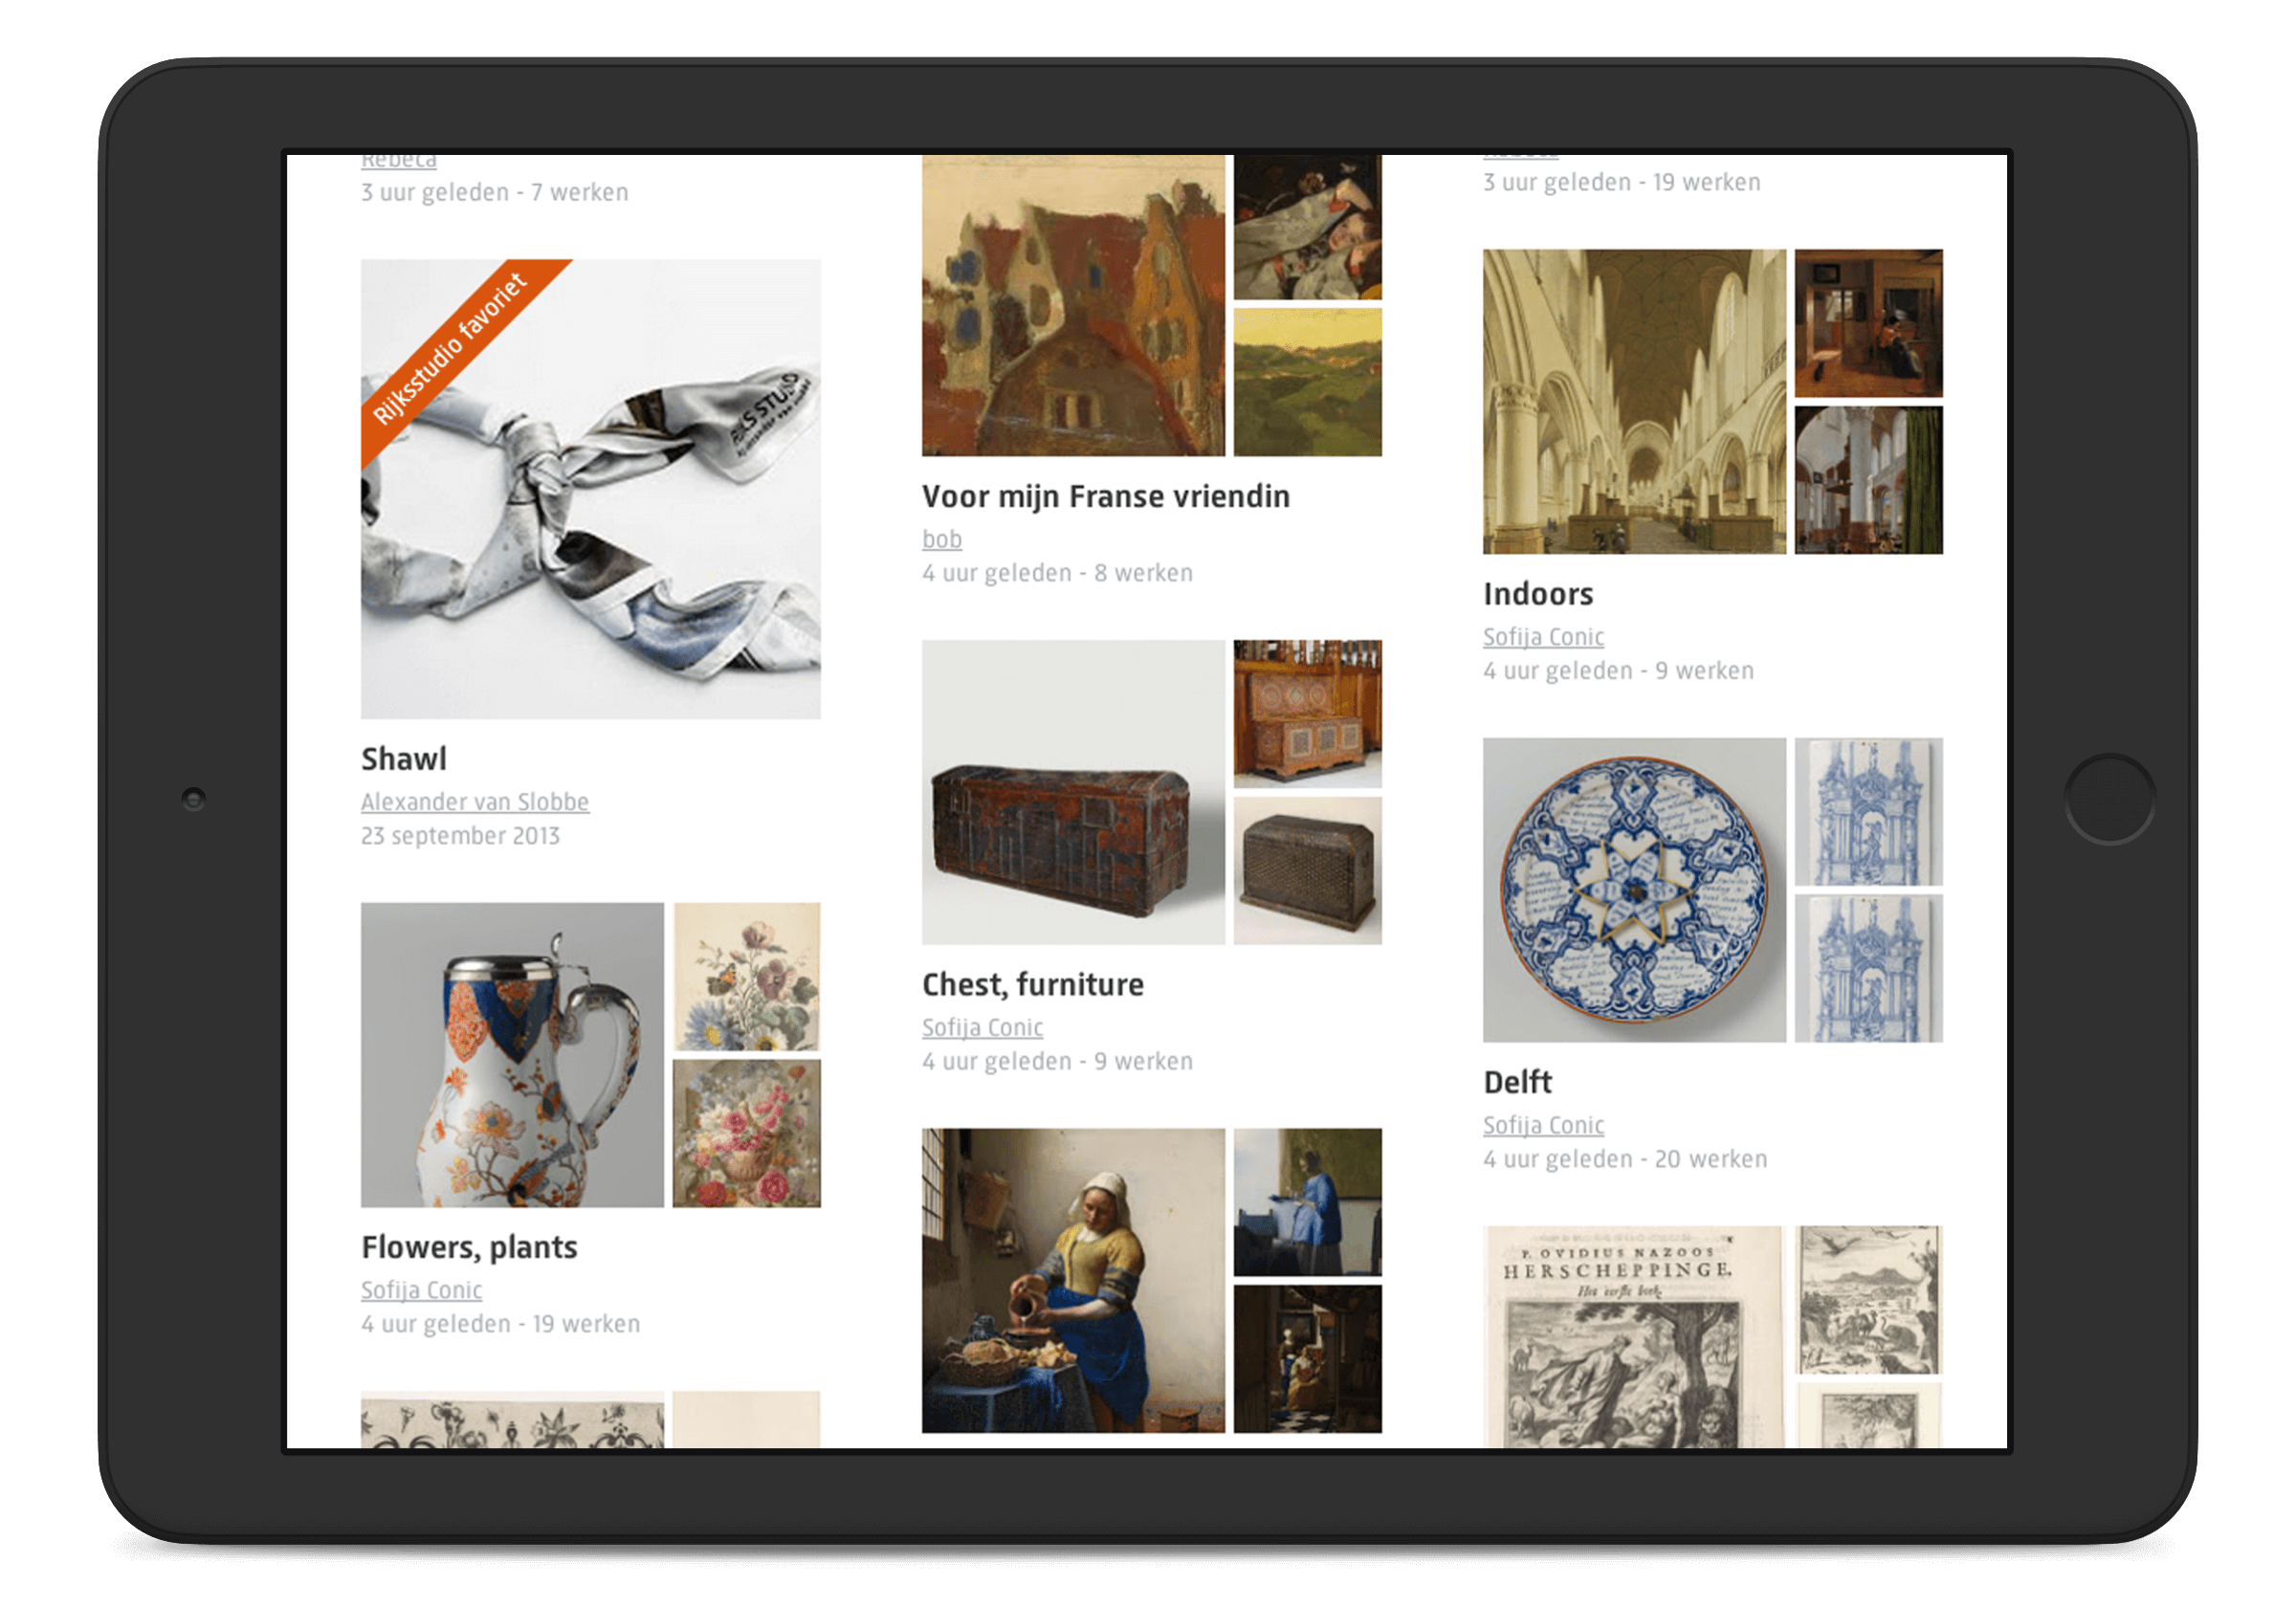 Rijksmuseum website, Rijksstudio stream